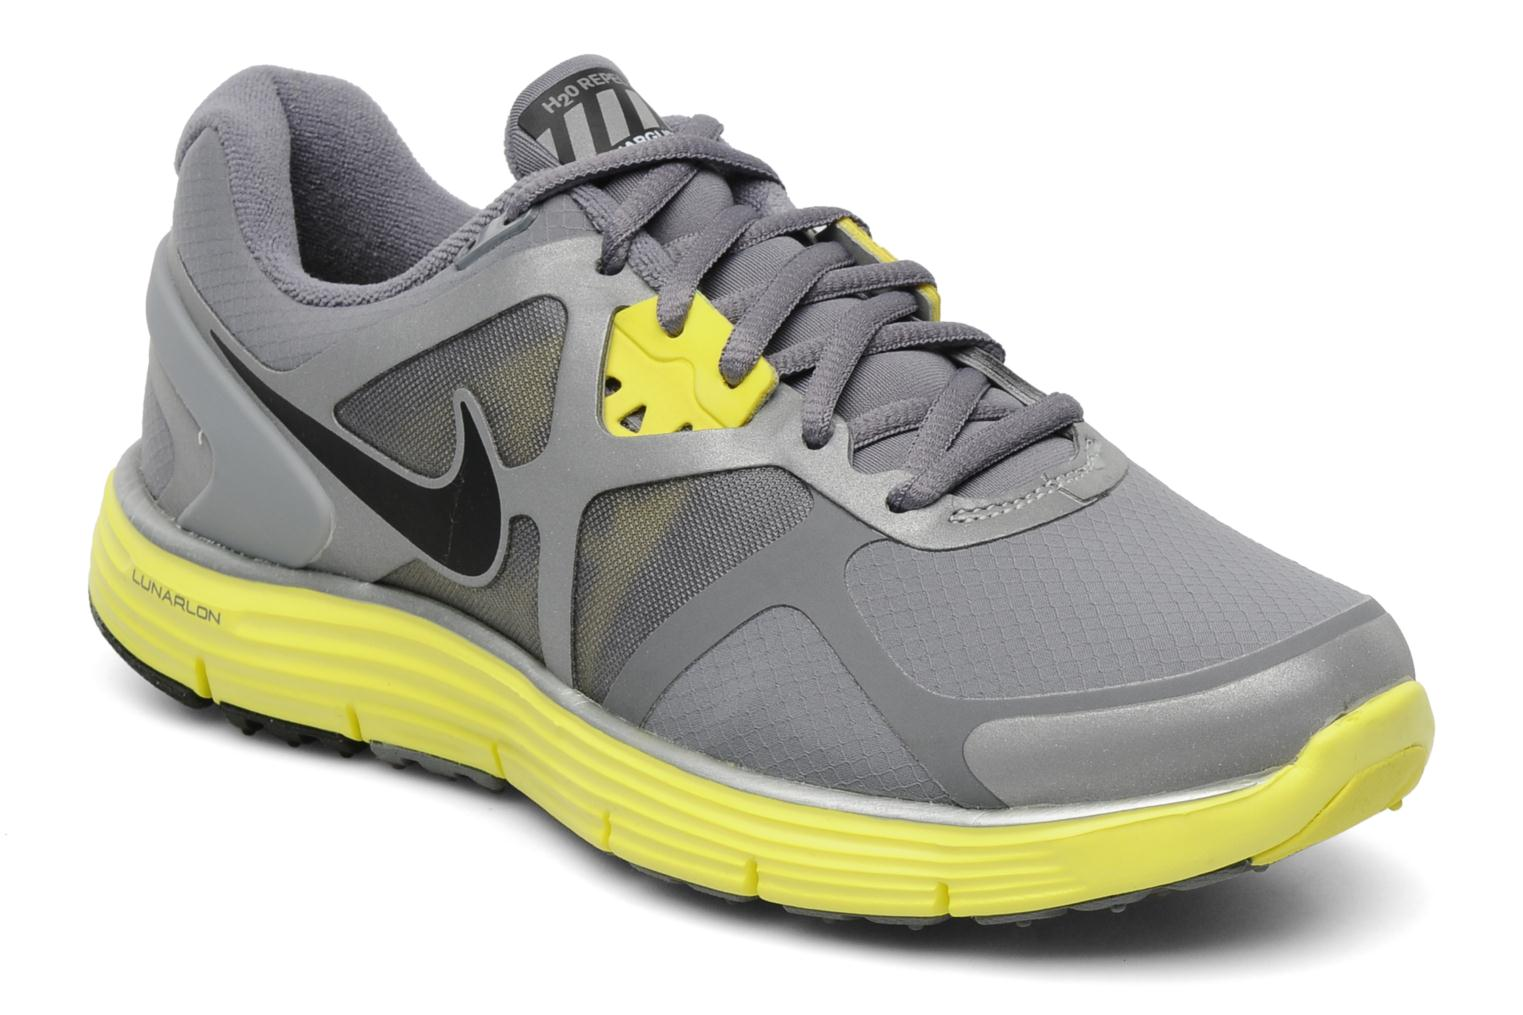 a054f762e7f10 ... real sport shoes nike wmns nike lunarglide 3 shield grey detailed view  pair view 44dec 77610